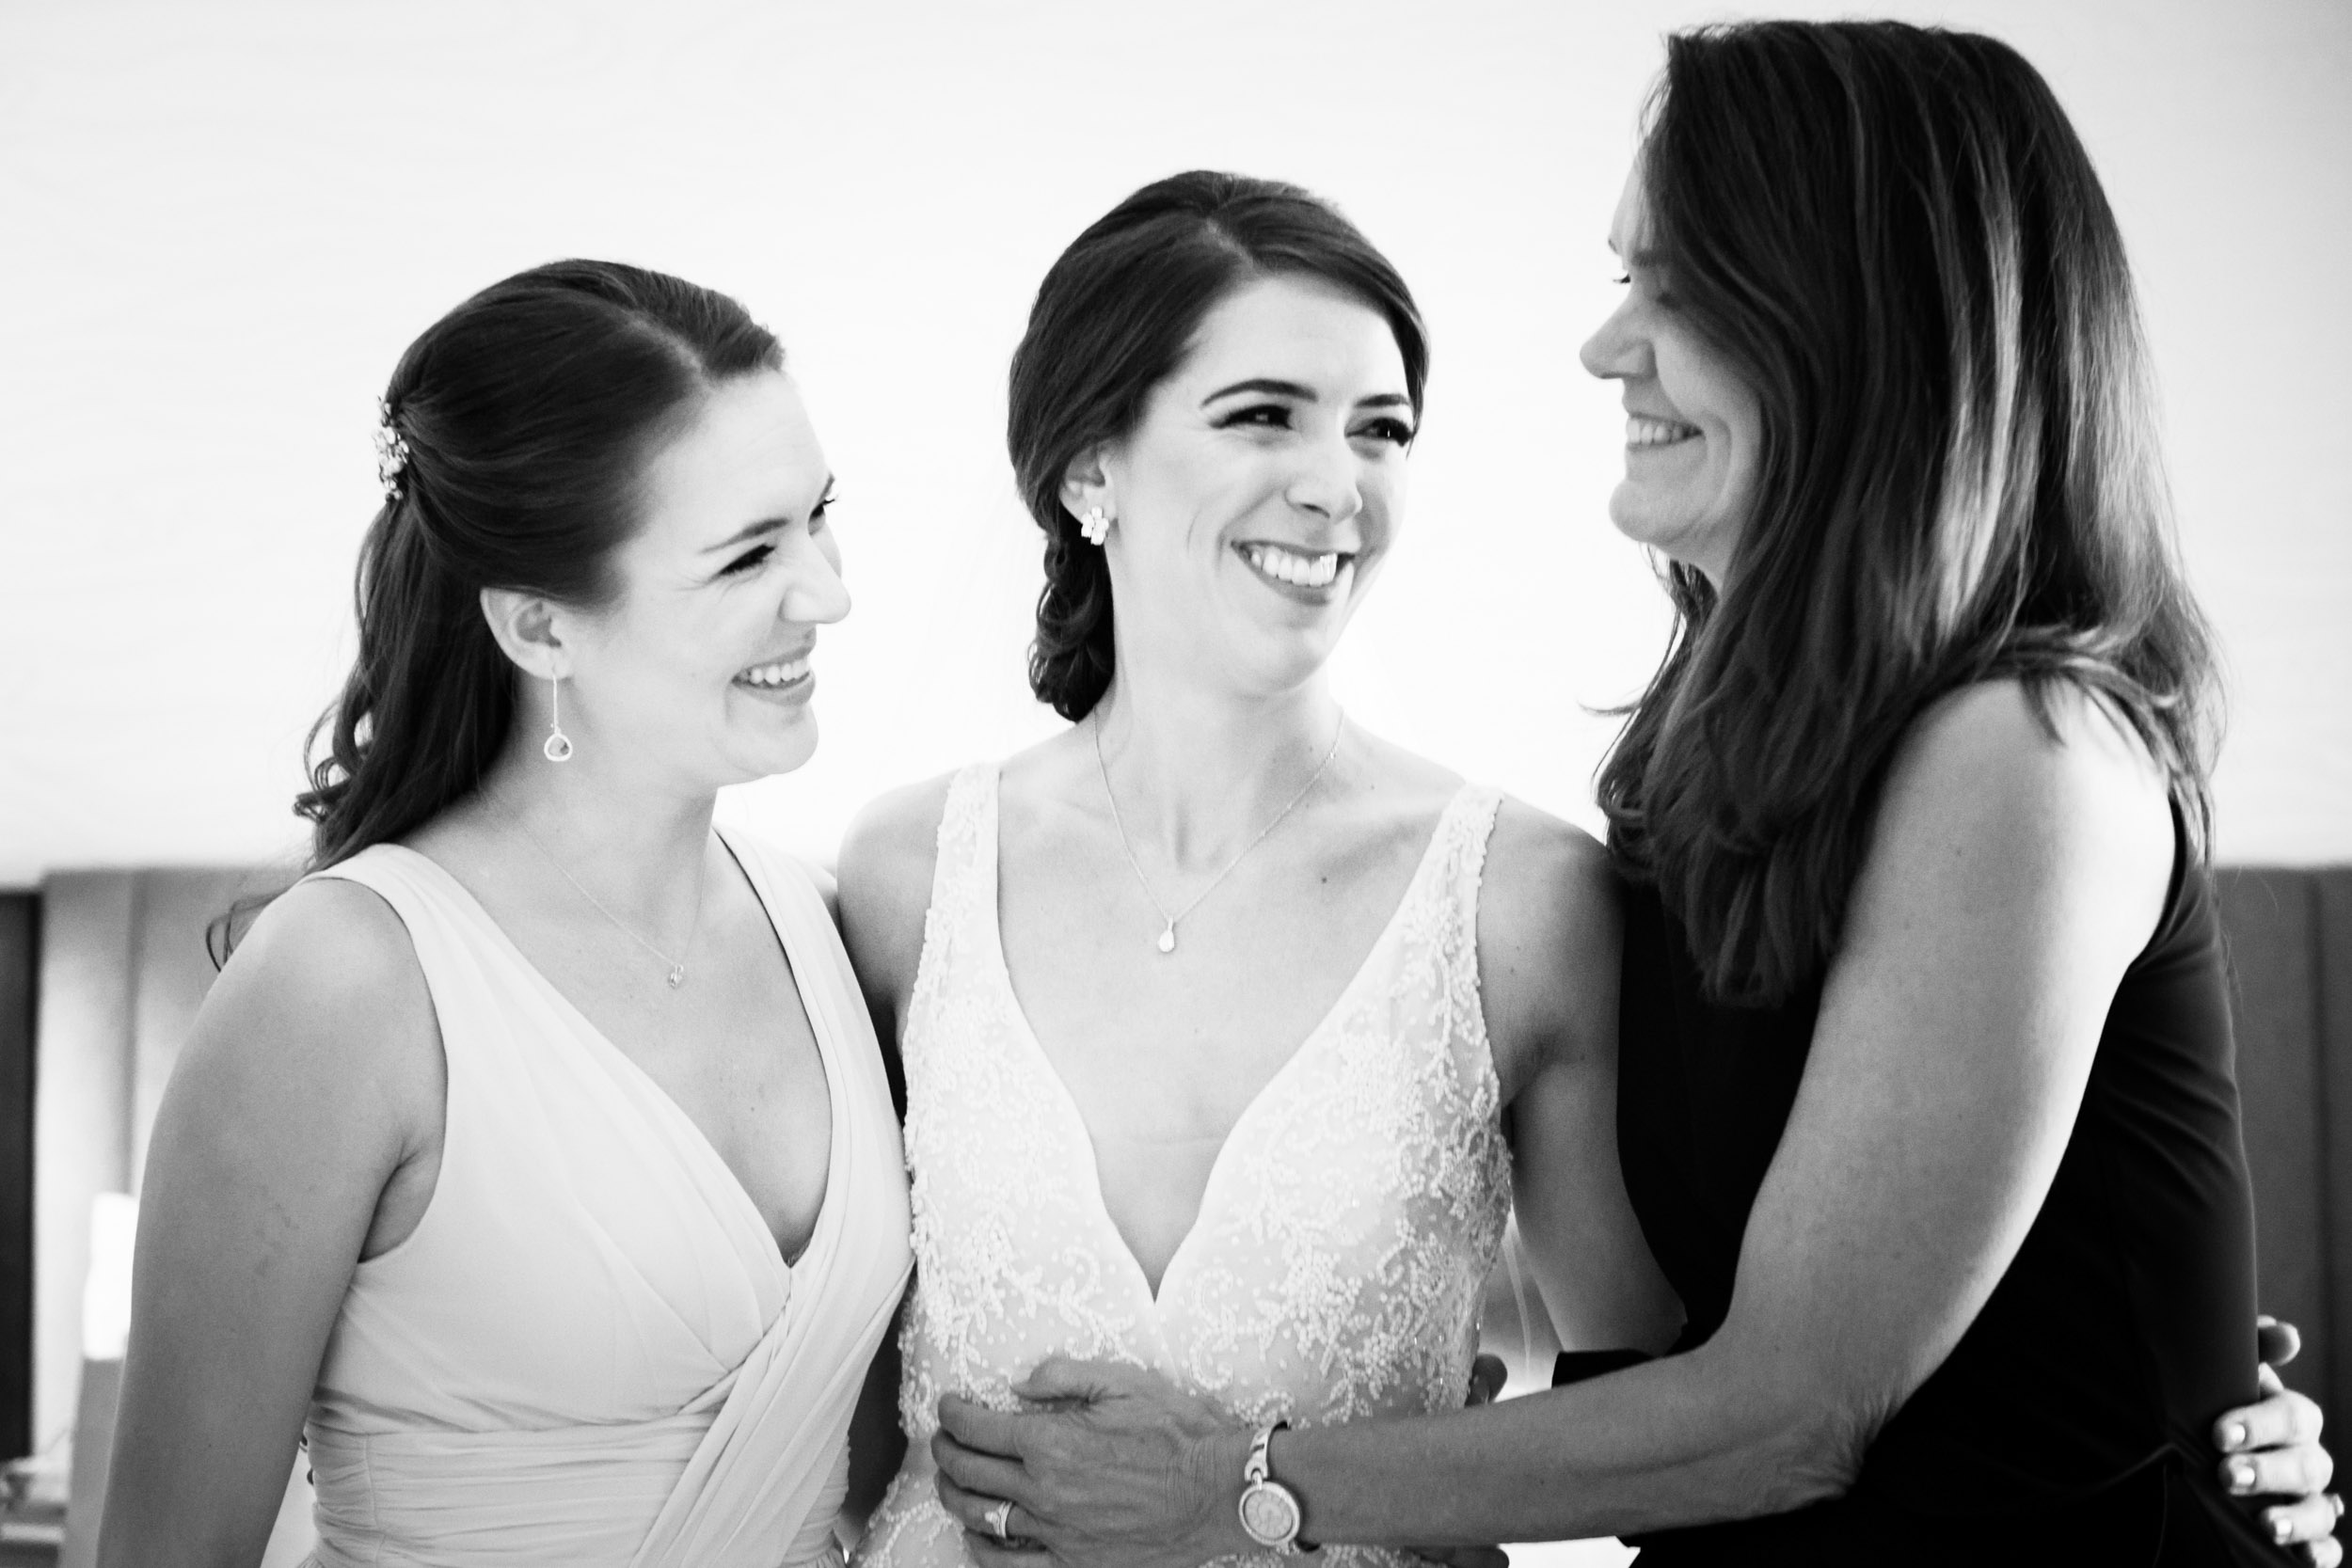 We love this candid photo of the bride and her family in the bridal suite at the Sheraton Grand in Chicago.